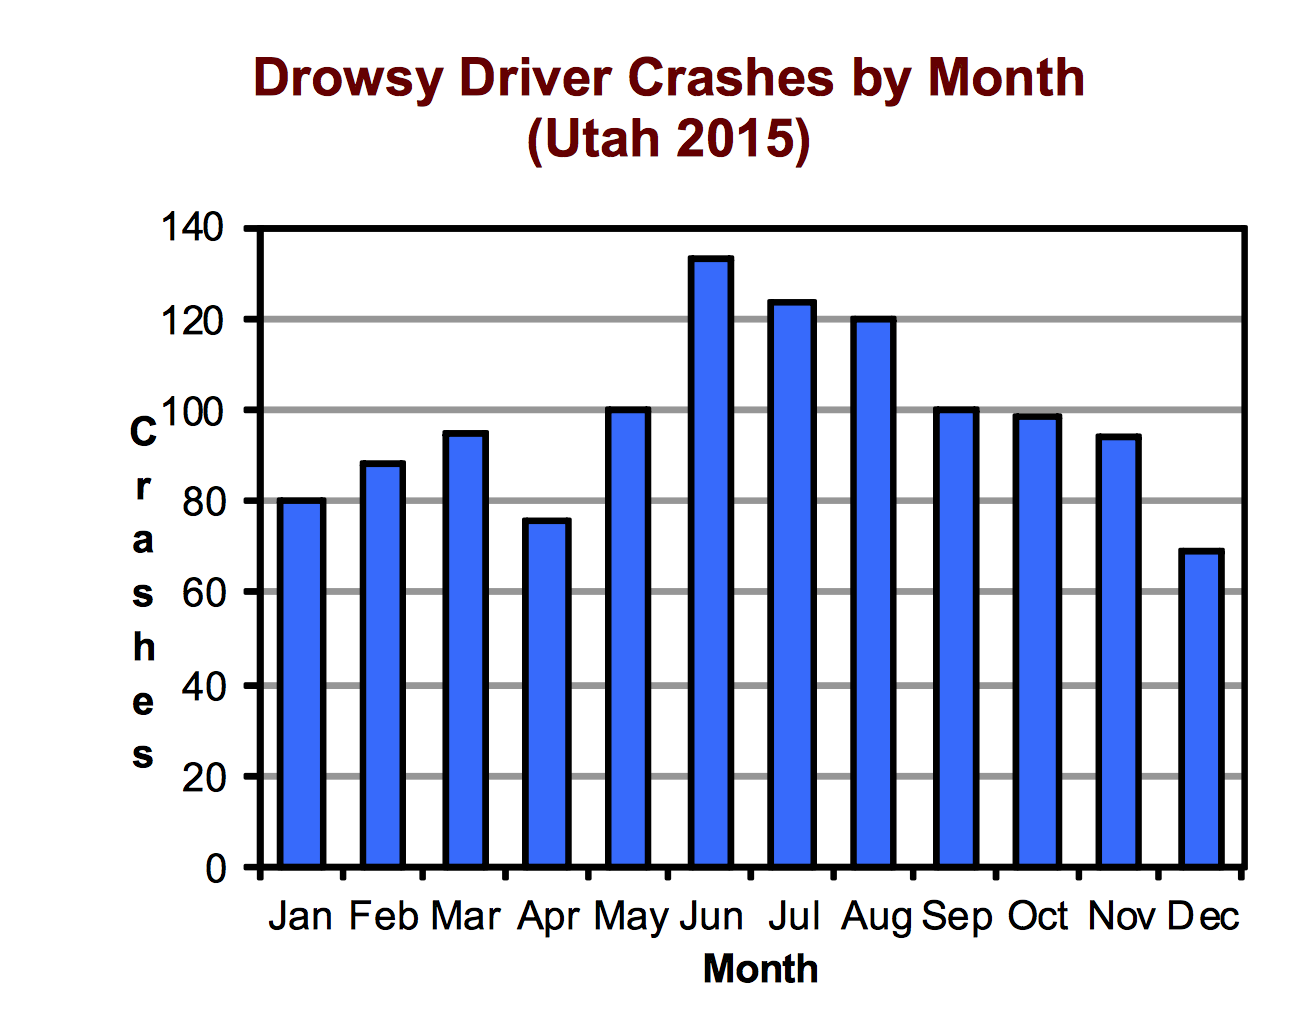 Graph showing drowsy driver crashes by month in Utah in 2015